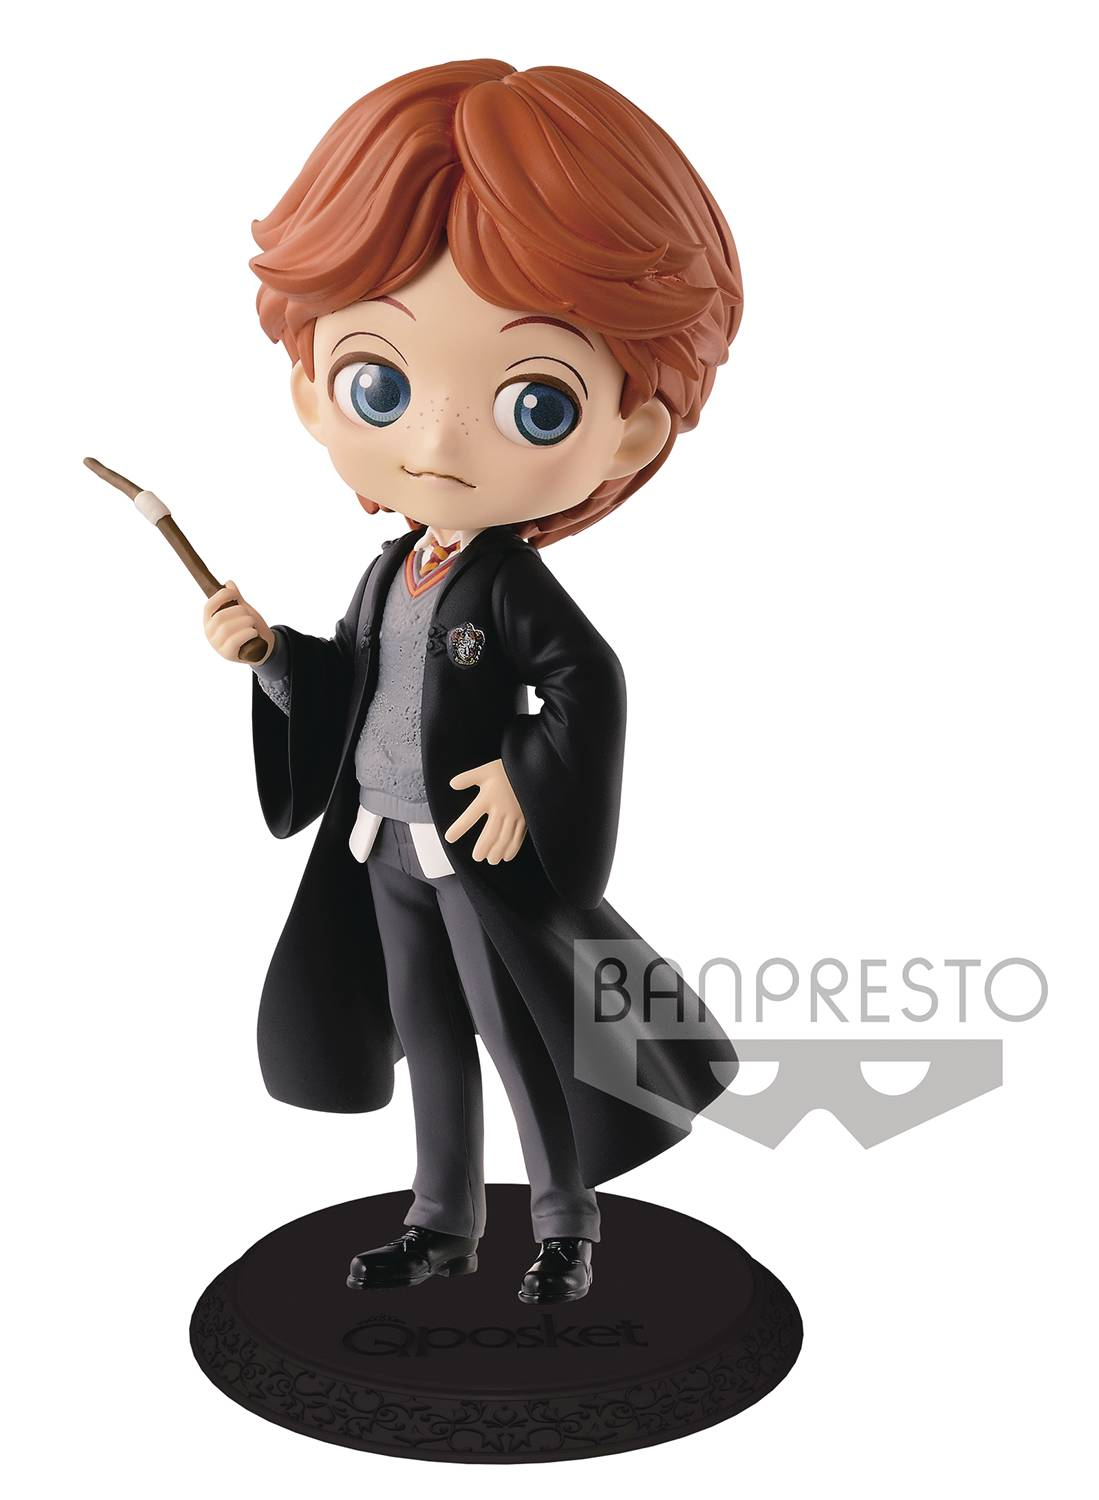 Banpresto Harry Potter Ron Weasley Q-Posket Figure